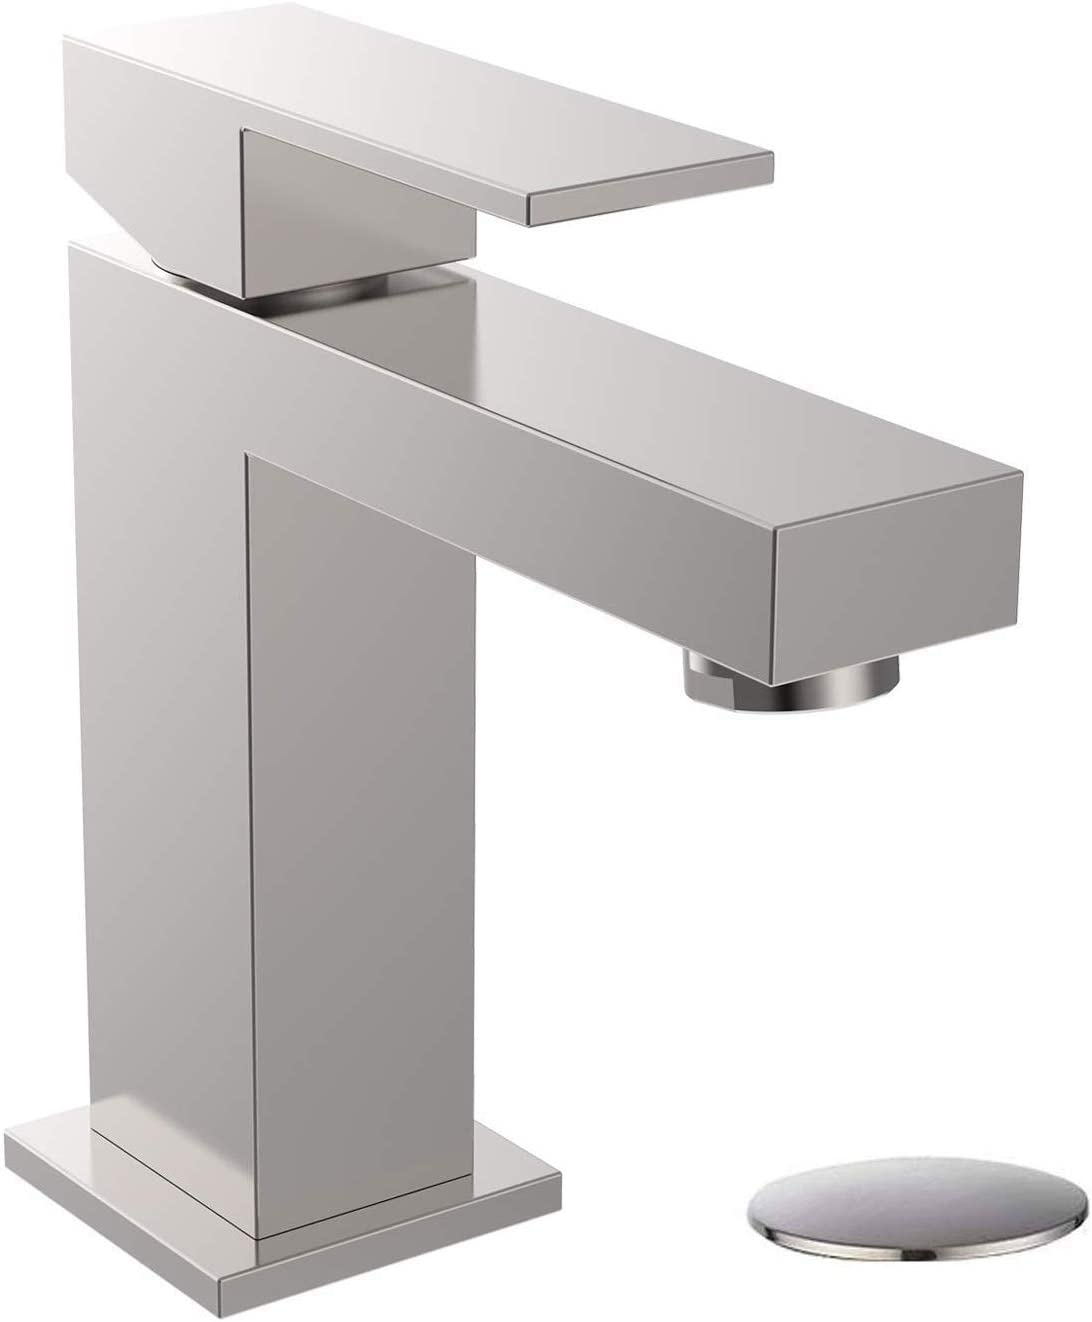 ALWEN Bathroom Faucet Brushed Nickel, Bathroom Faucets for Sink 20 Hole,  Single Faucet with Pop Up Drain Leadfree Touch on Bathroom Sink Faucet,